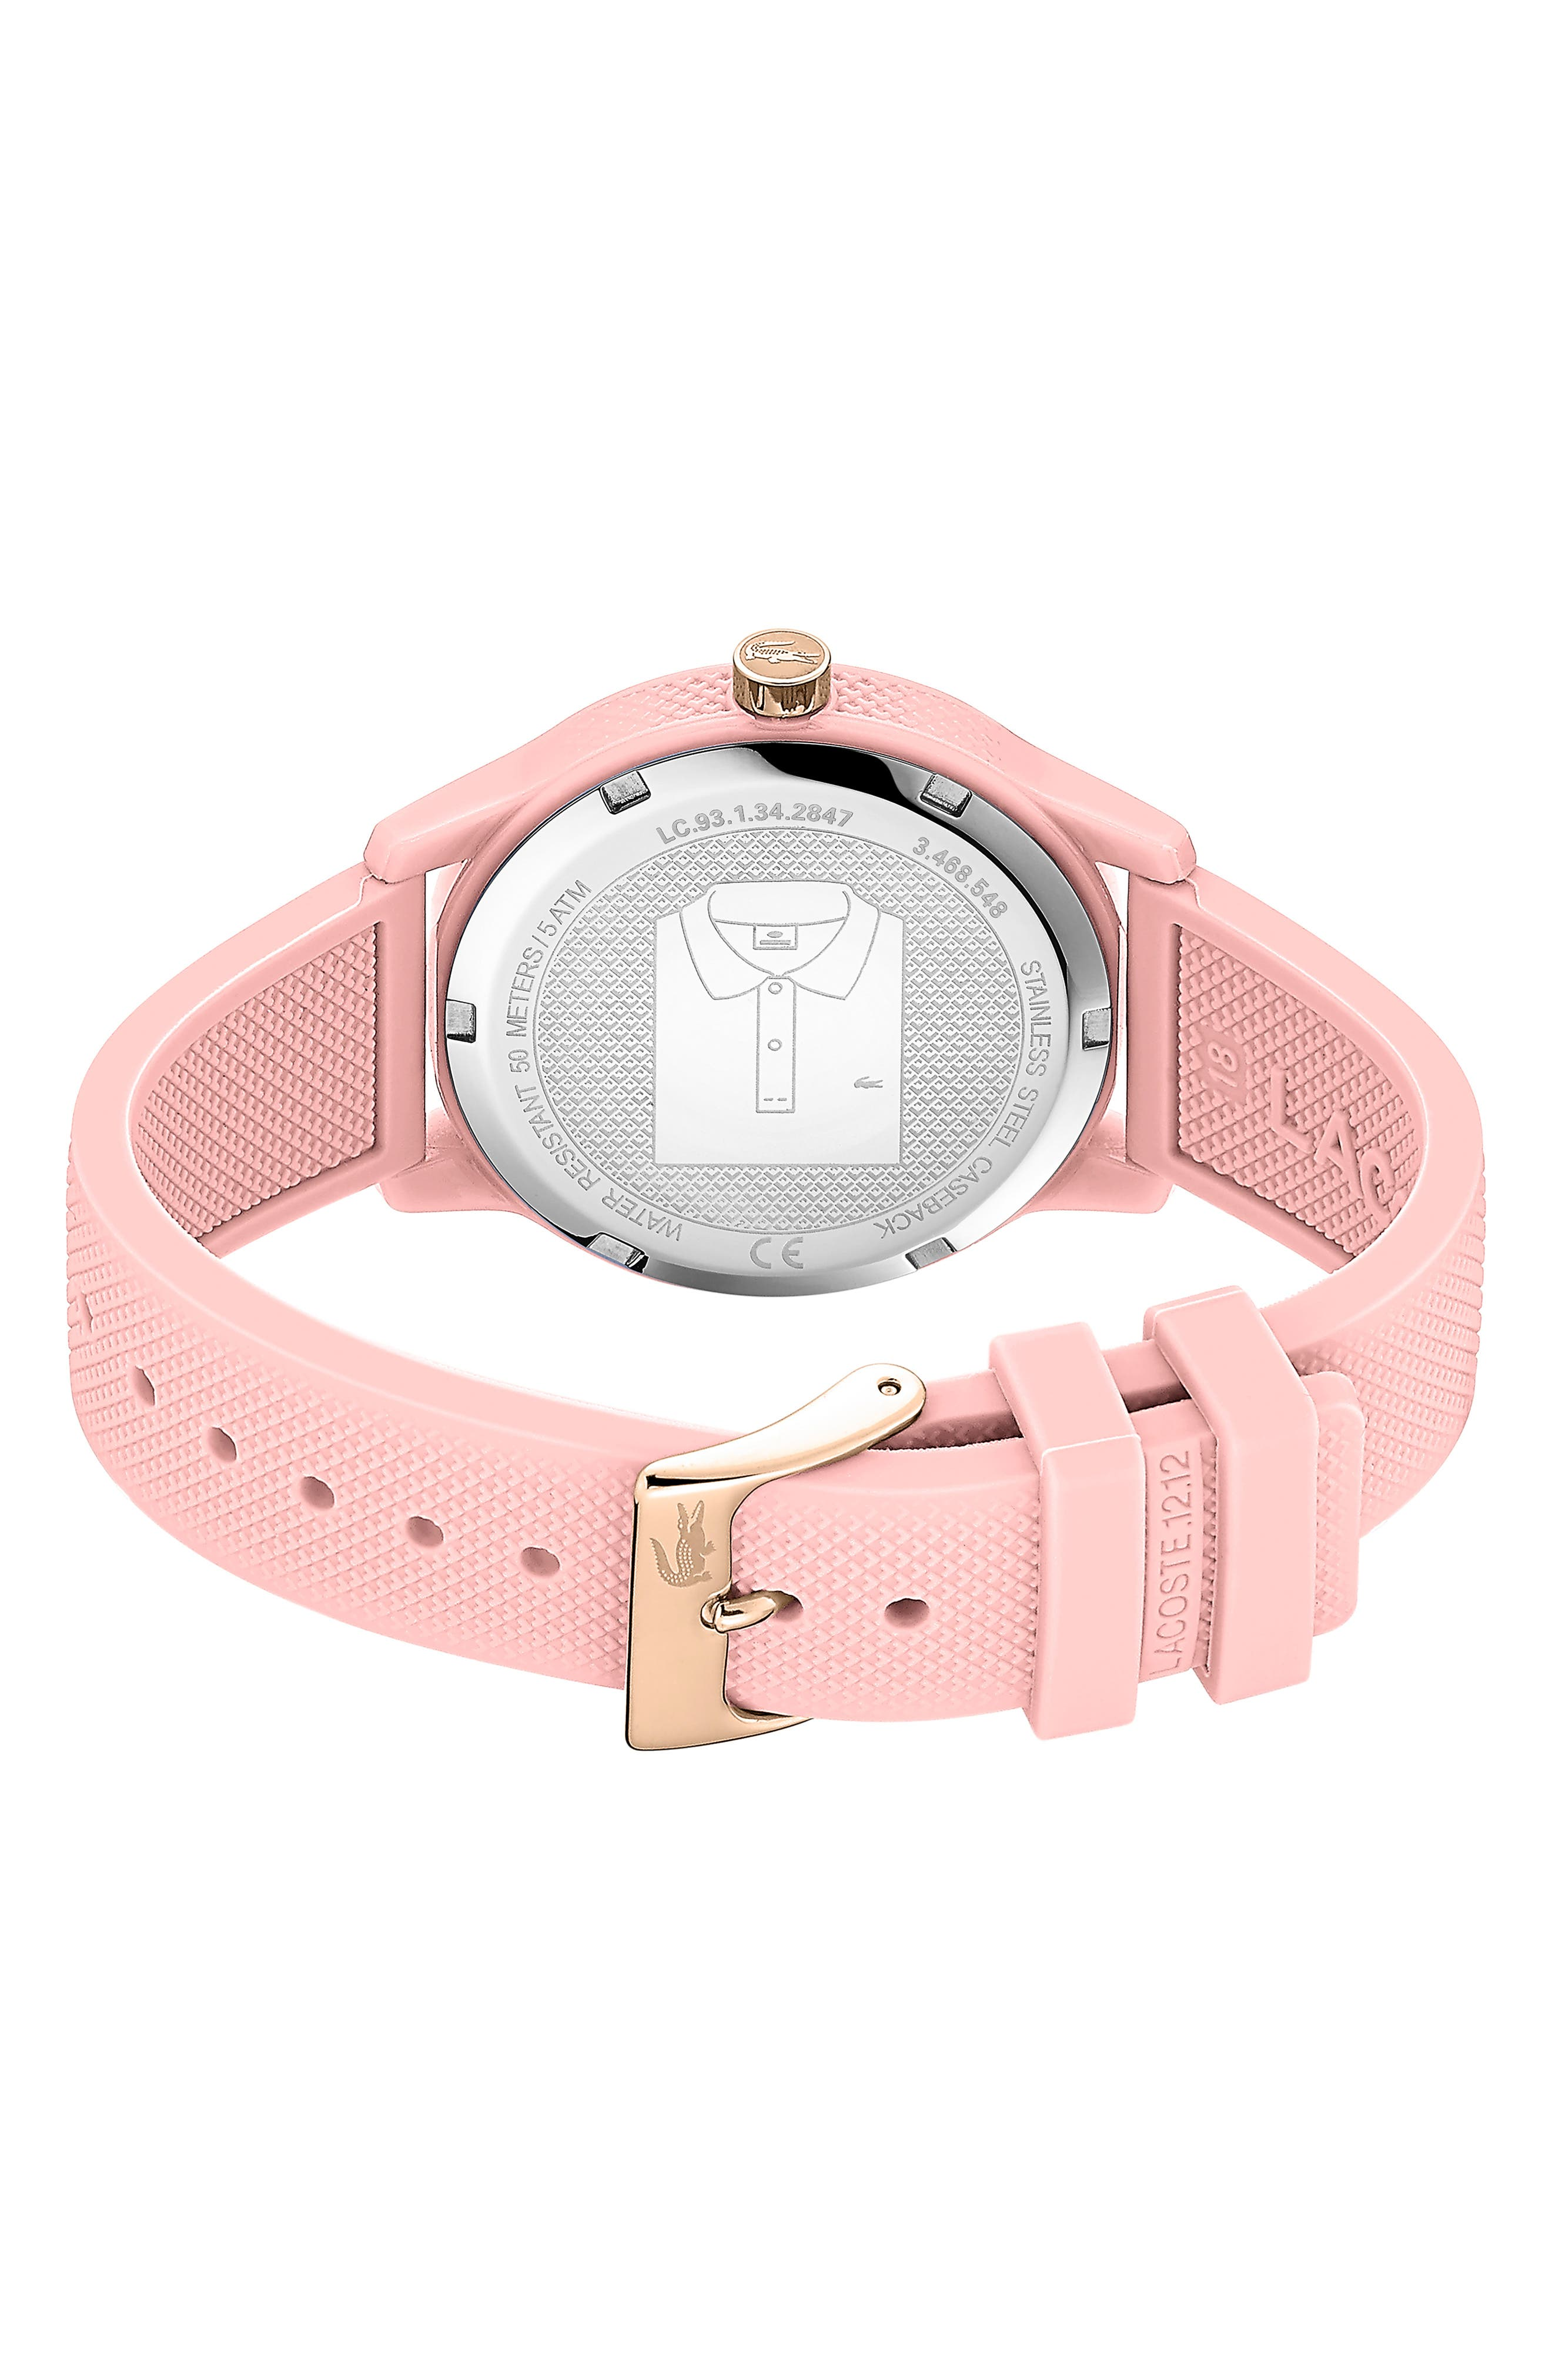 LACOSTE, 12.12 Silicone Strap Watch, 36mm, Alternate thumbnail 2, color, PINK